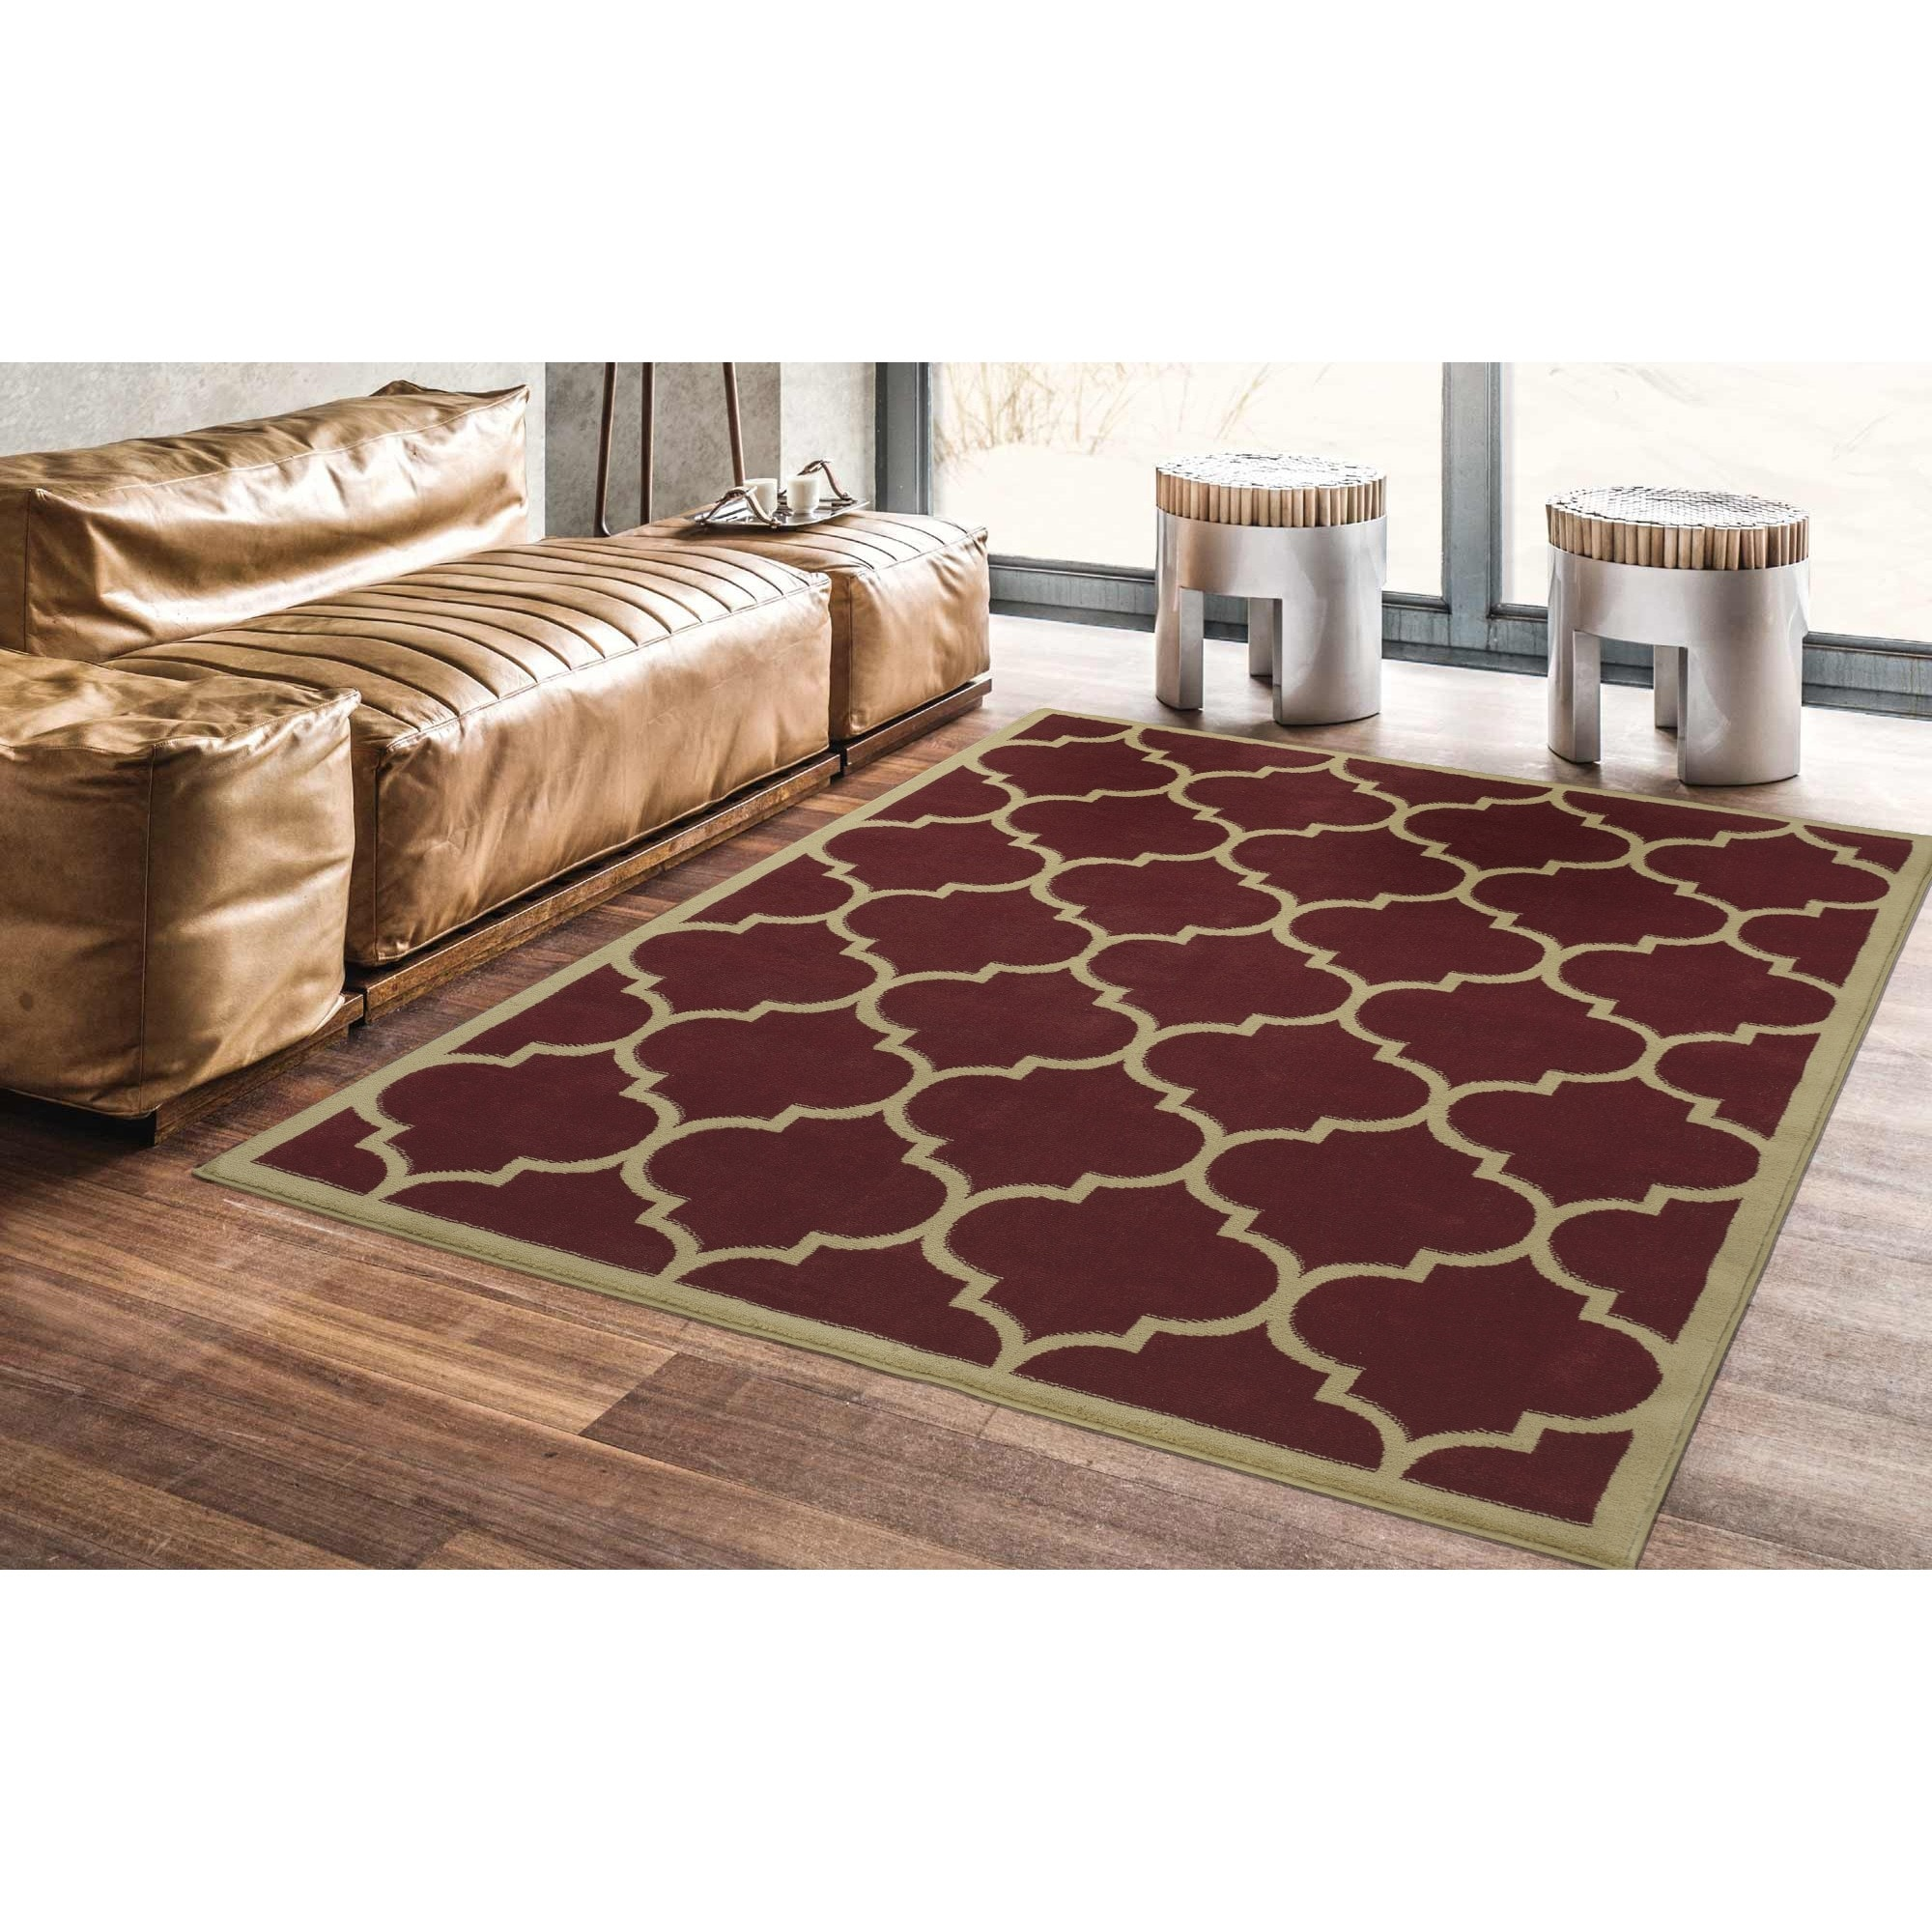 Contemporary Rugs 5x7 Area Rug Ideas